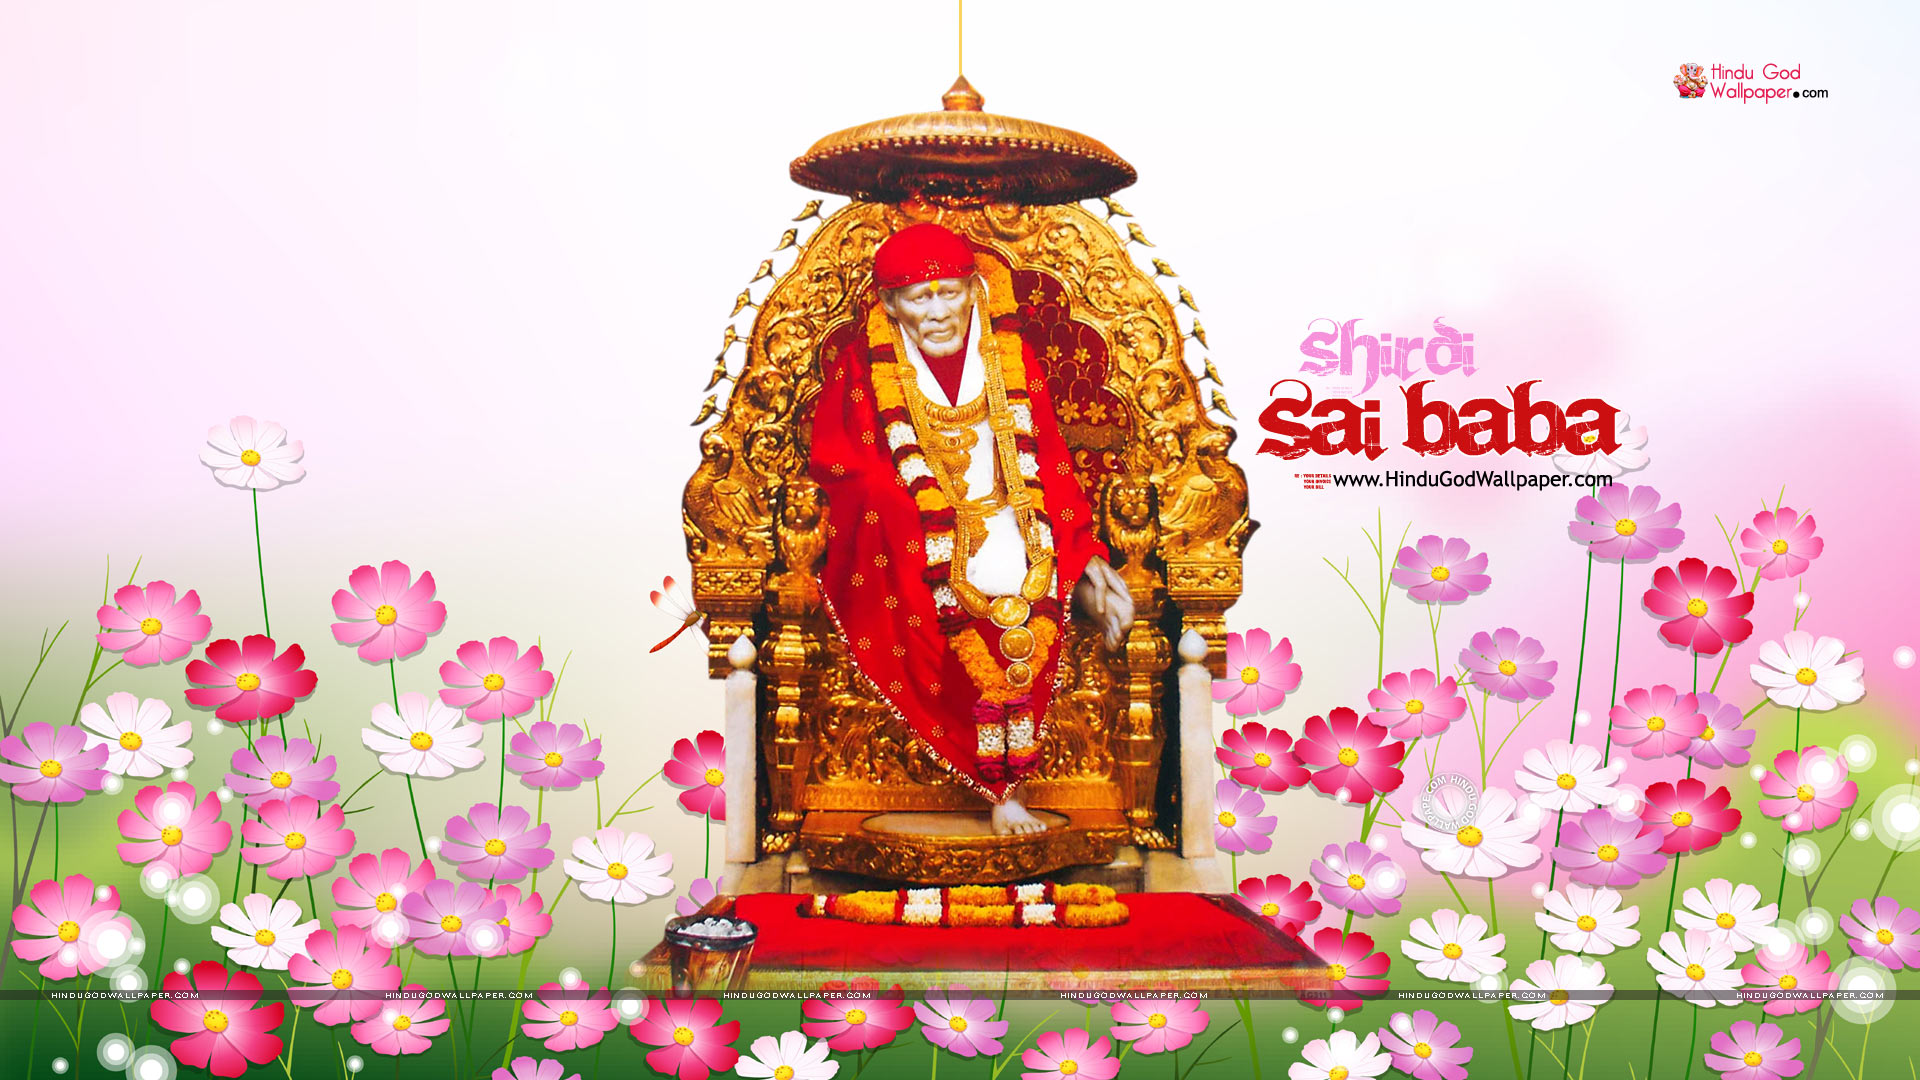 Shirdi Sai Baba Wallpaper Full Size For Desktop 1920x1080